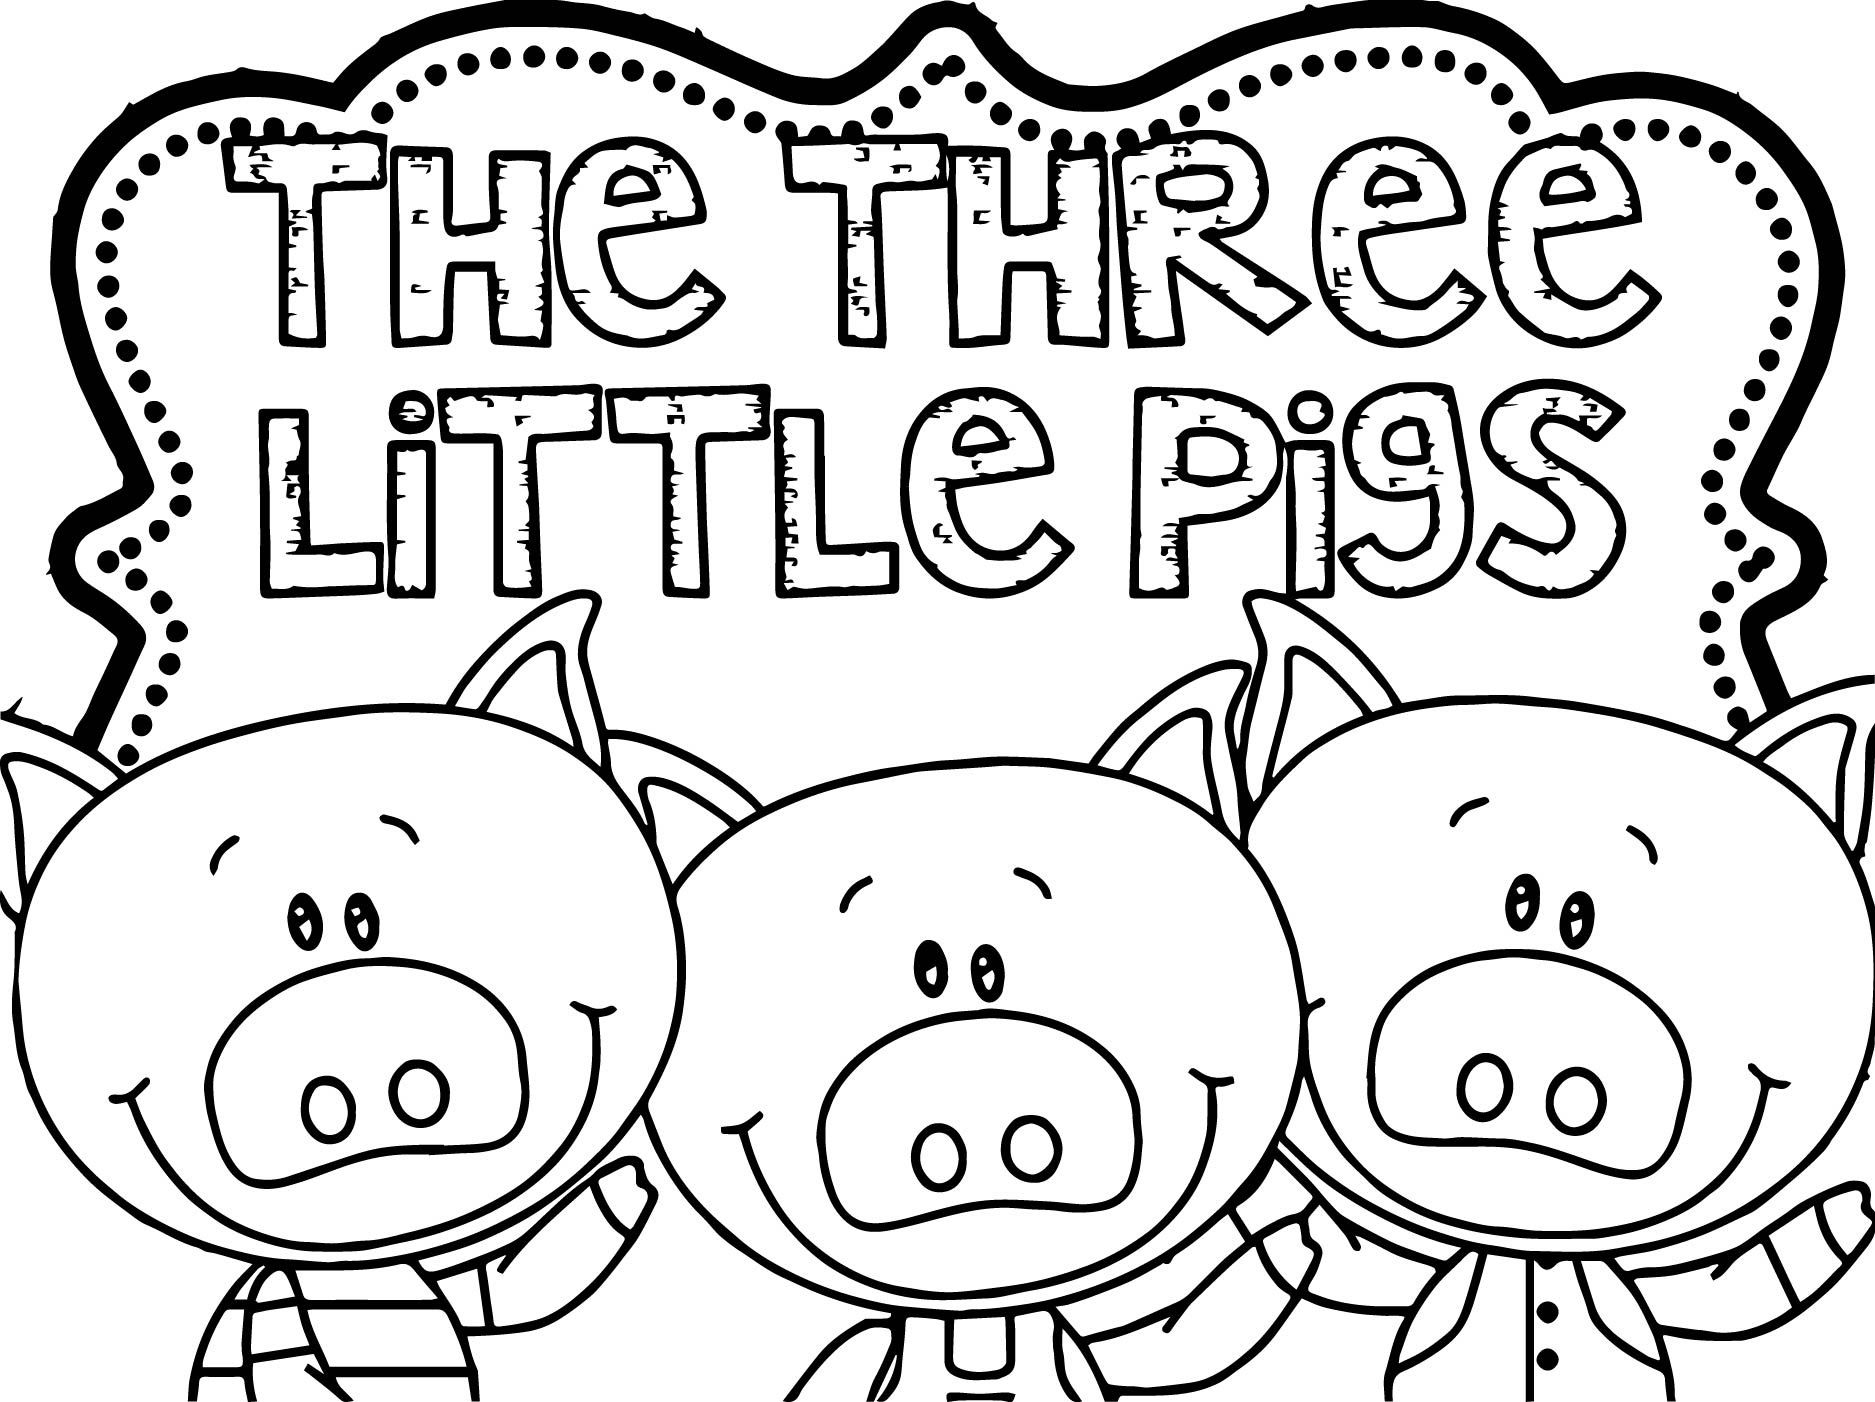 Three Little Pigs Coloring Page | Wecoloringpage.com